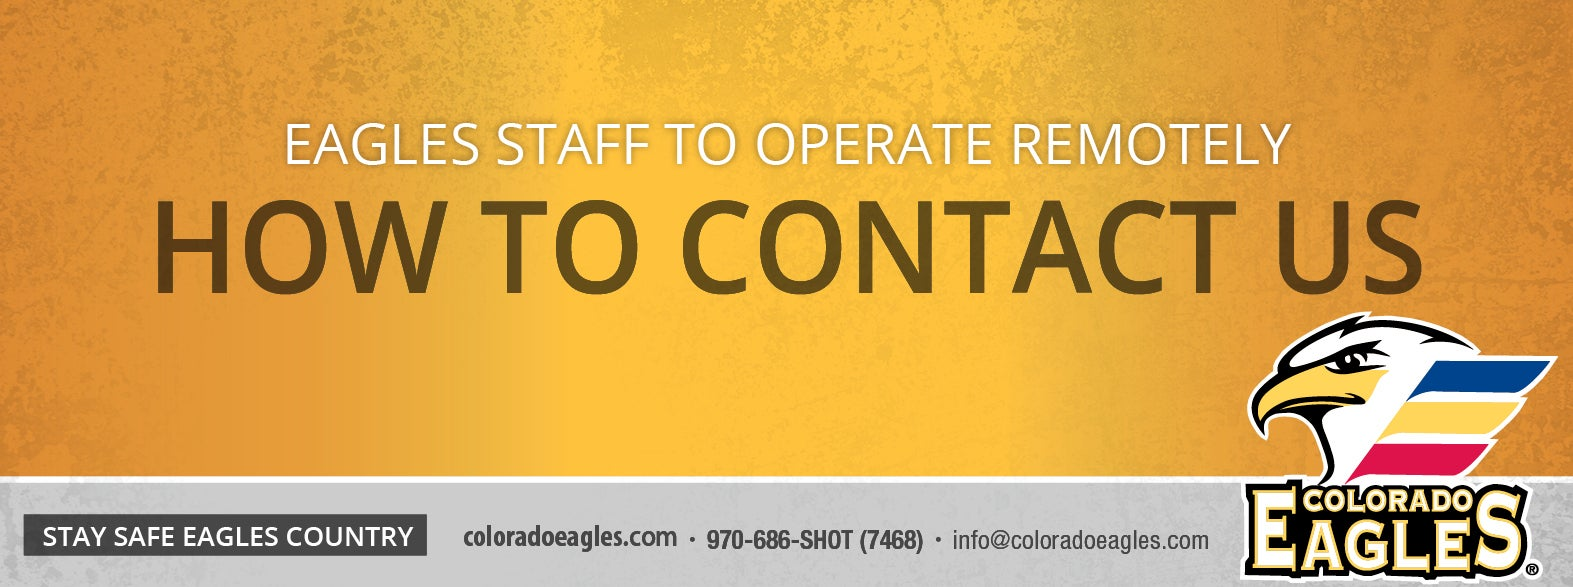 Colorado Eagles Staff to Operate Remotely